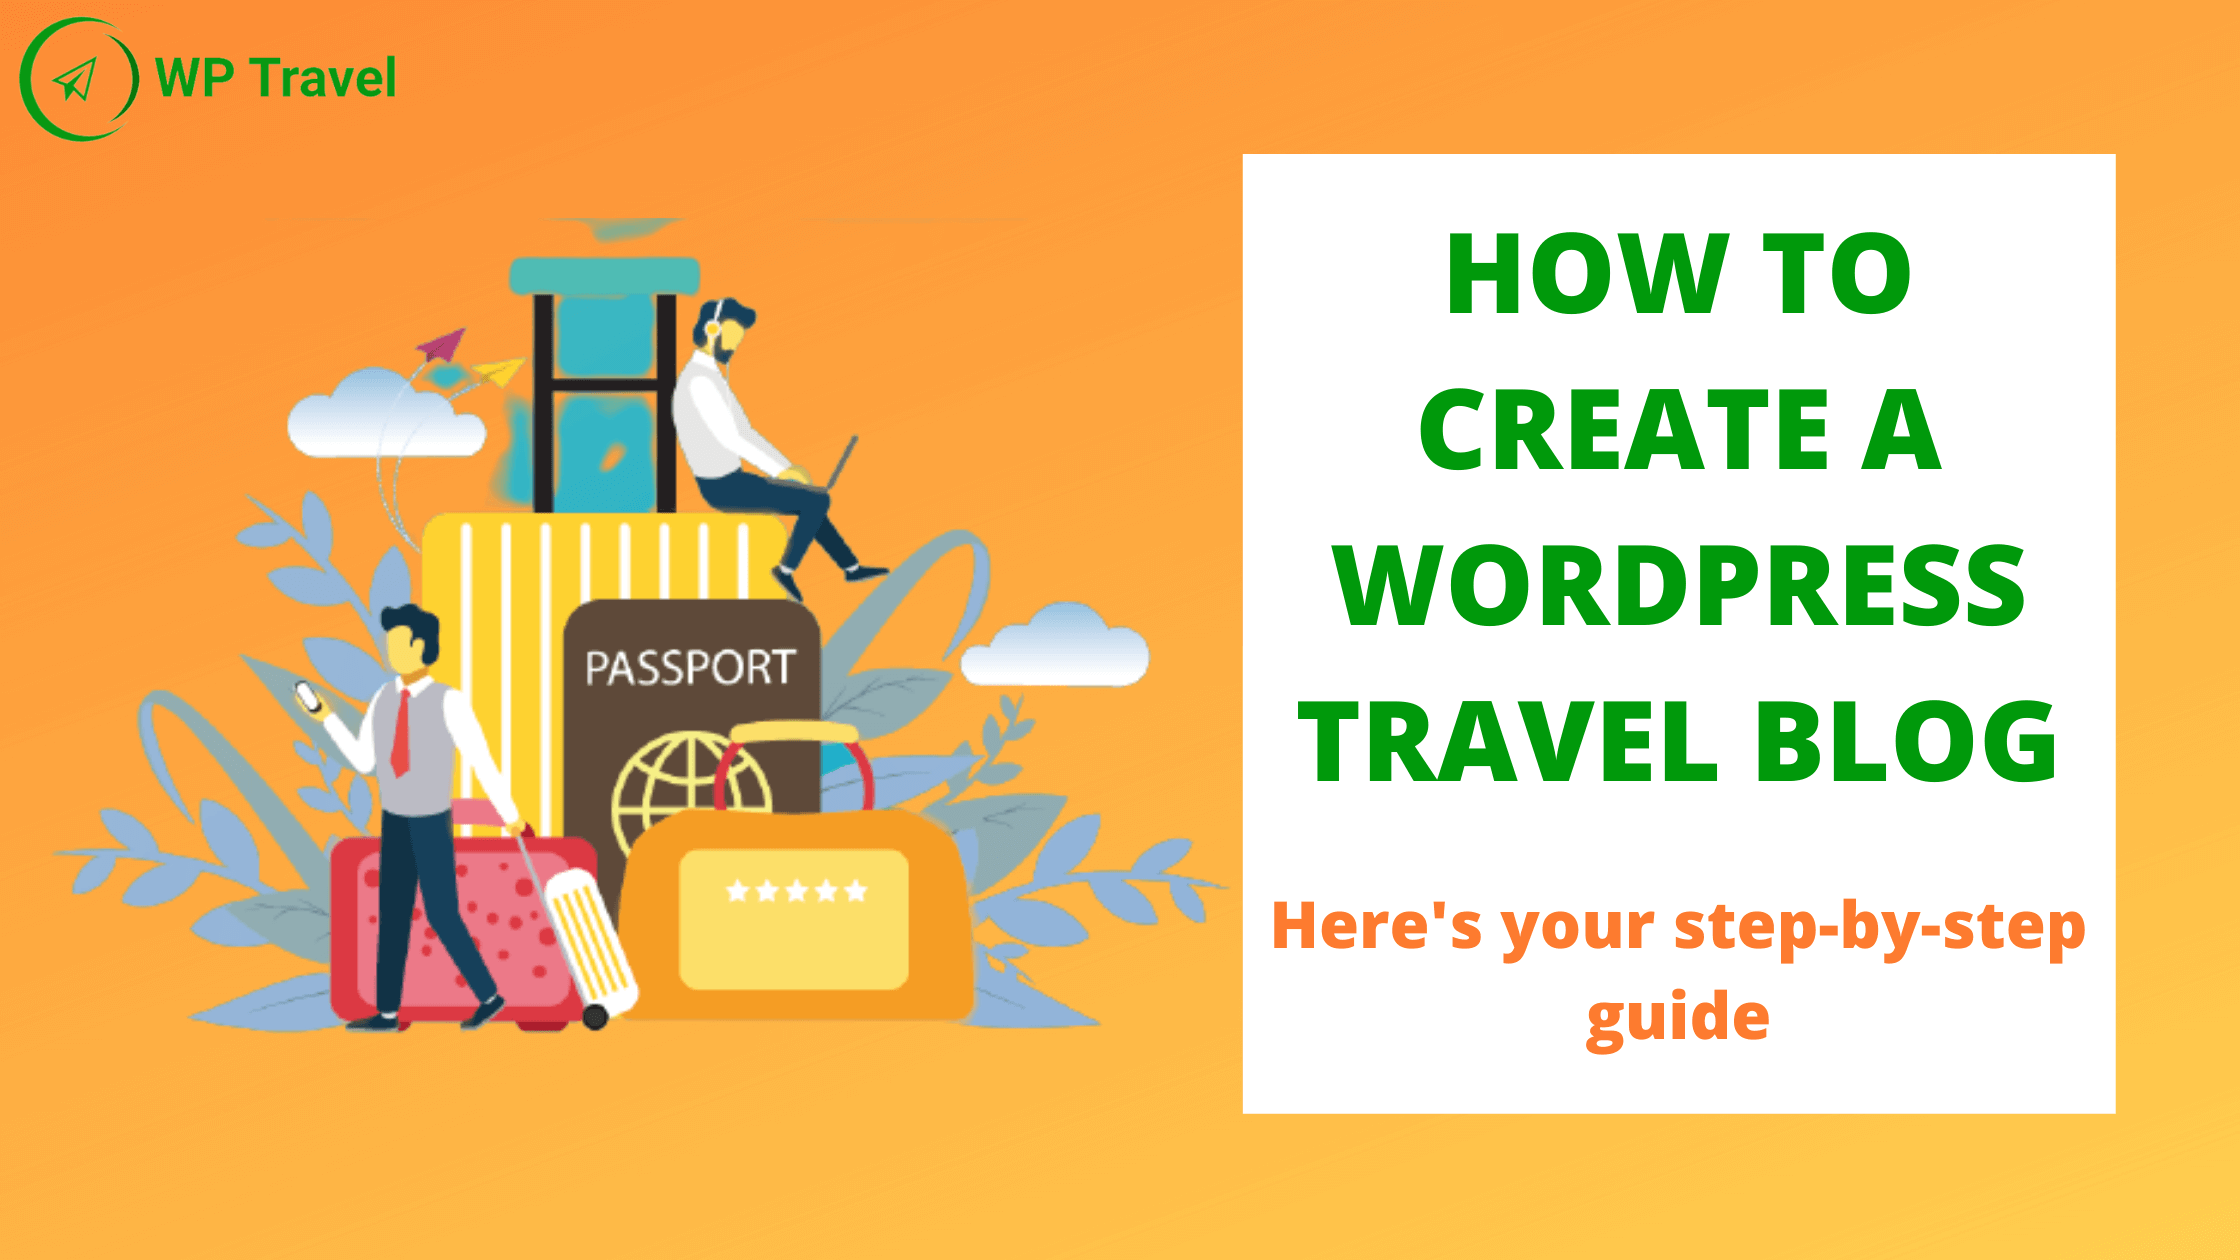 How to create a WordPress travel blog